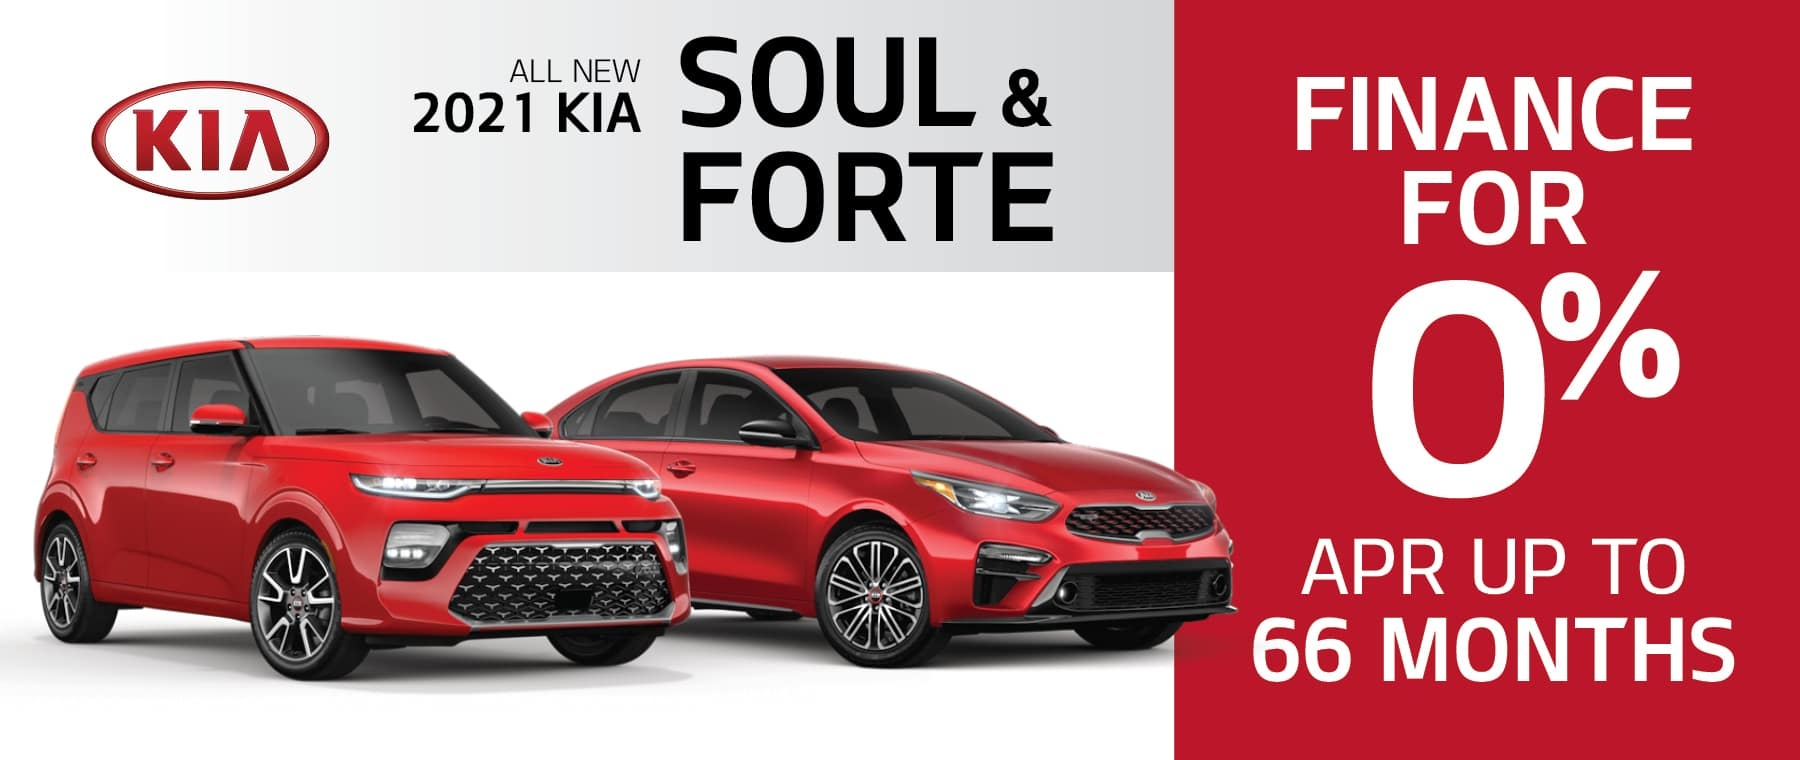 2021 Kia Soul and Forte 0% APR for up to 66 Months at Smail Kia